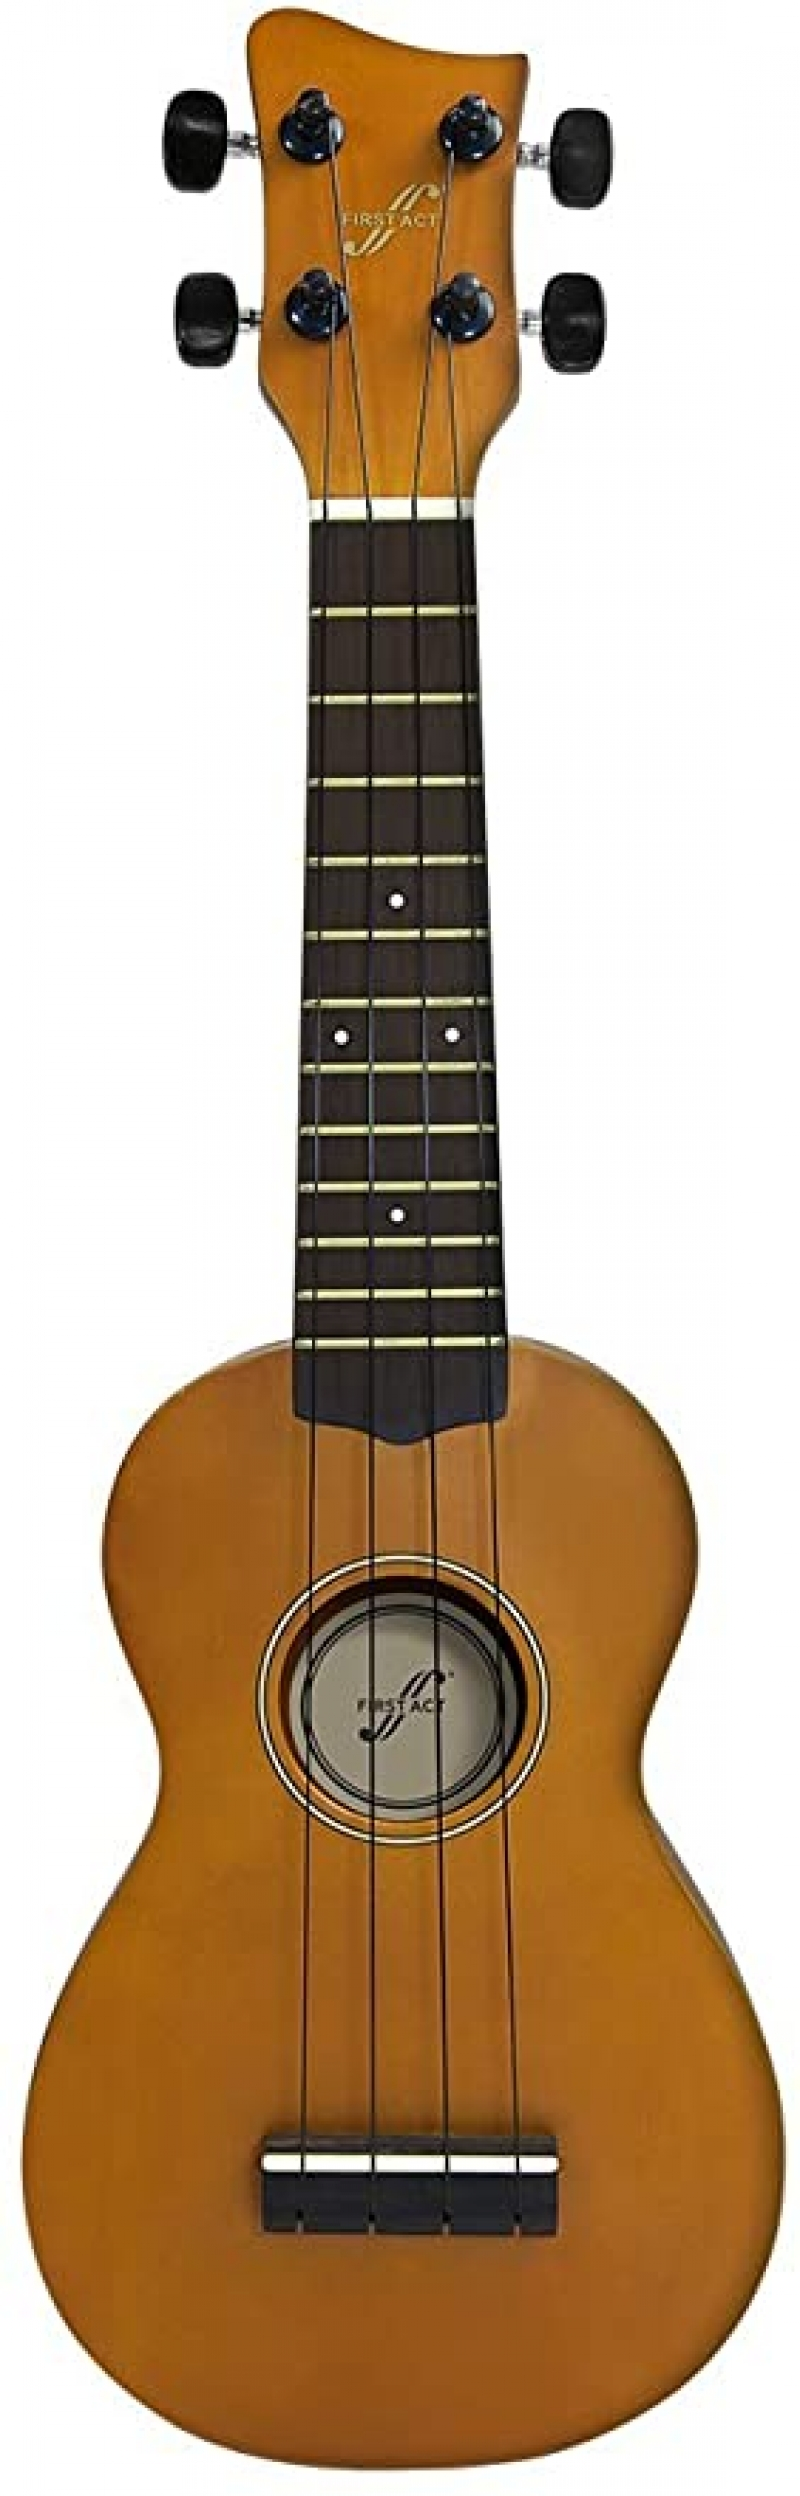 First Act Ukulele 烏克麗麗 $21.76